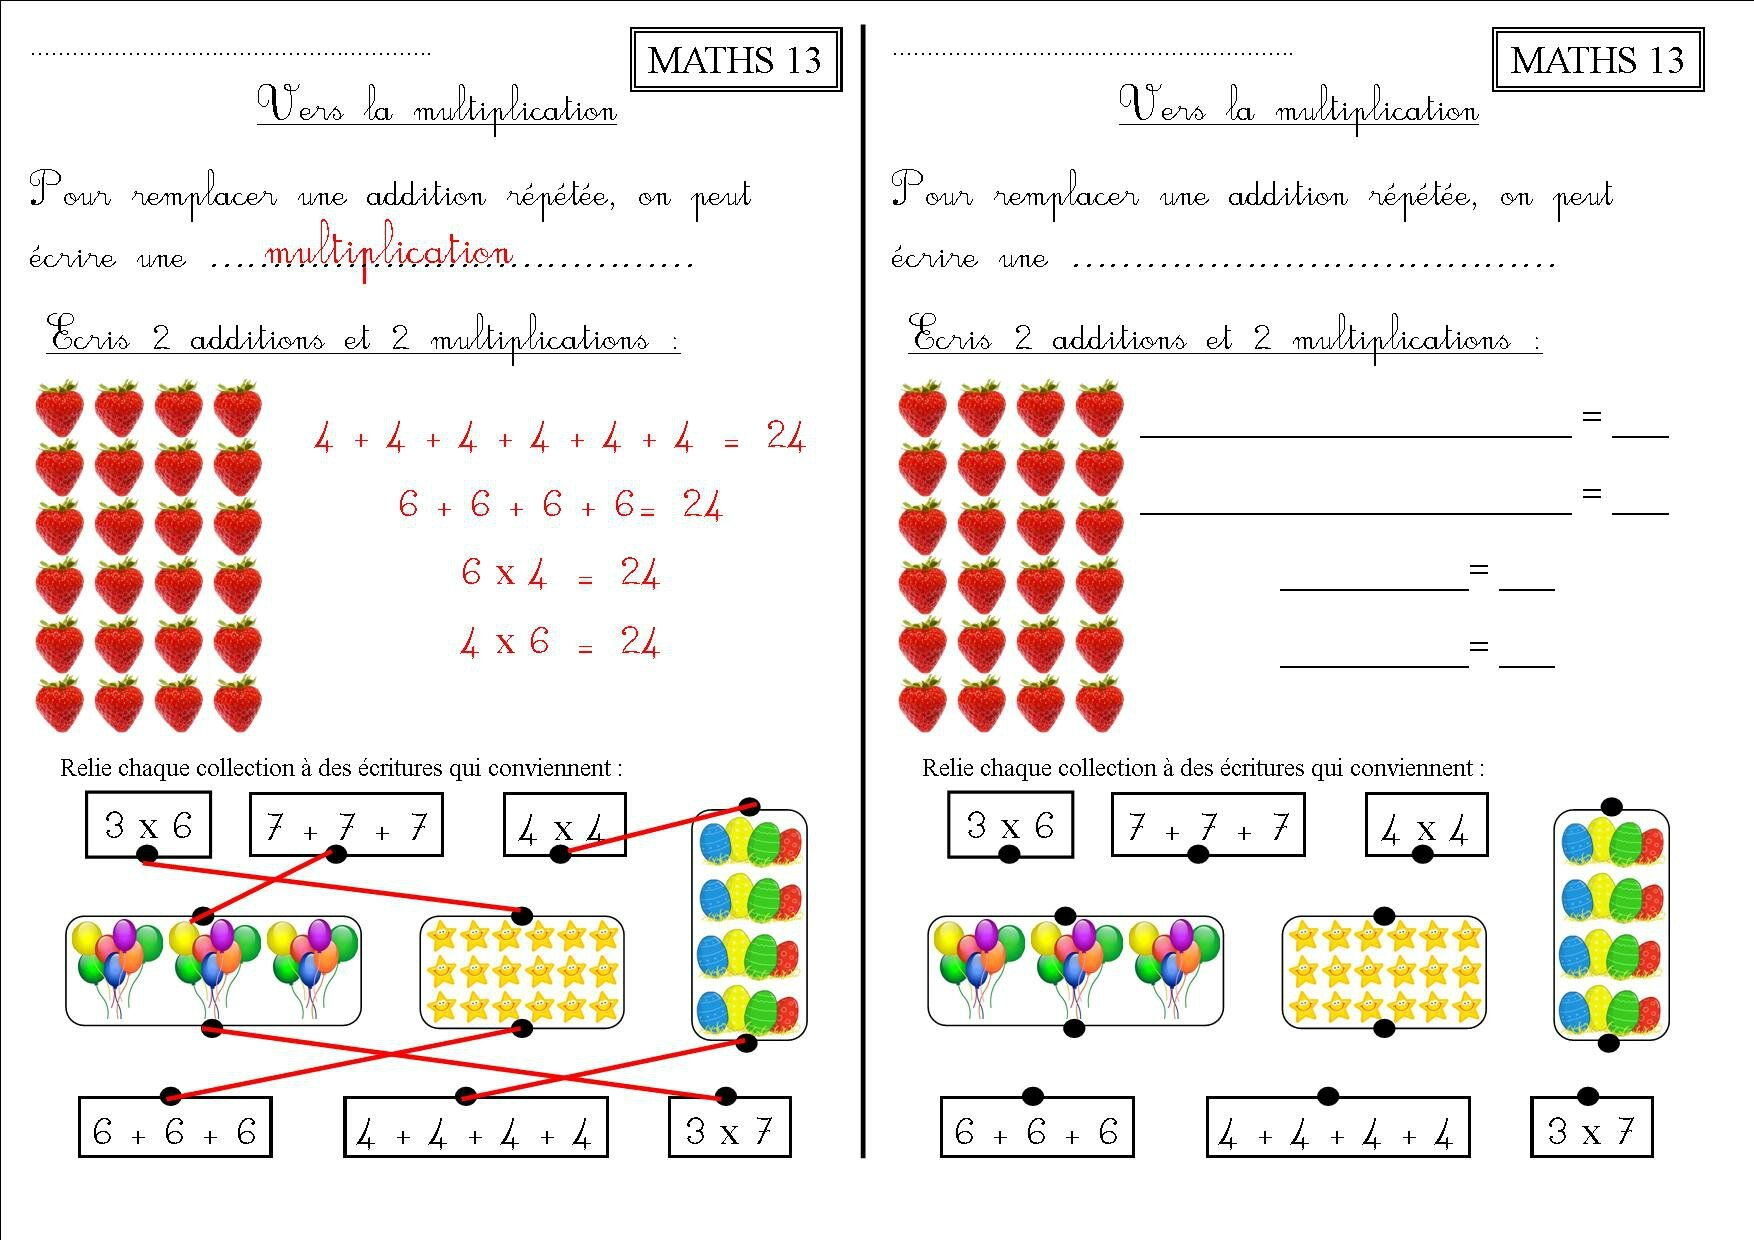 Maths 13 ce1 vers la multiplication la classe des ce for Table de multiplication exercice